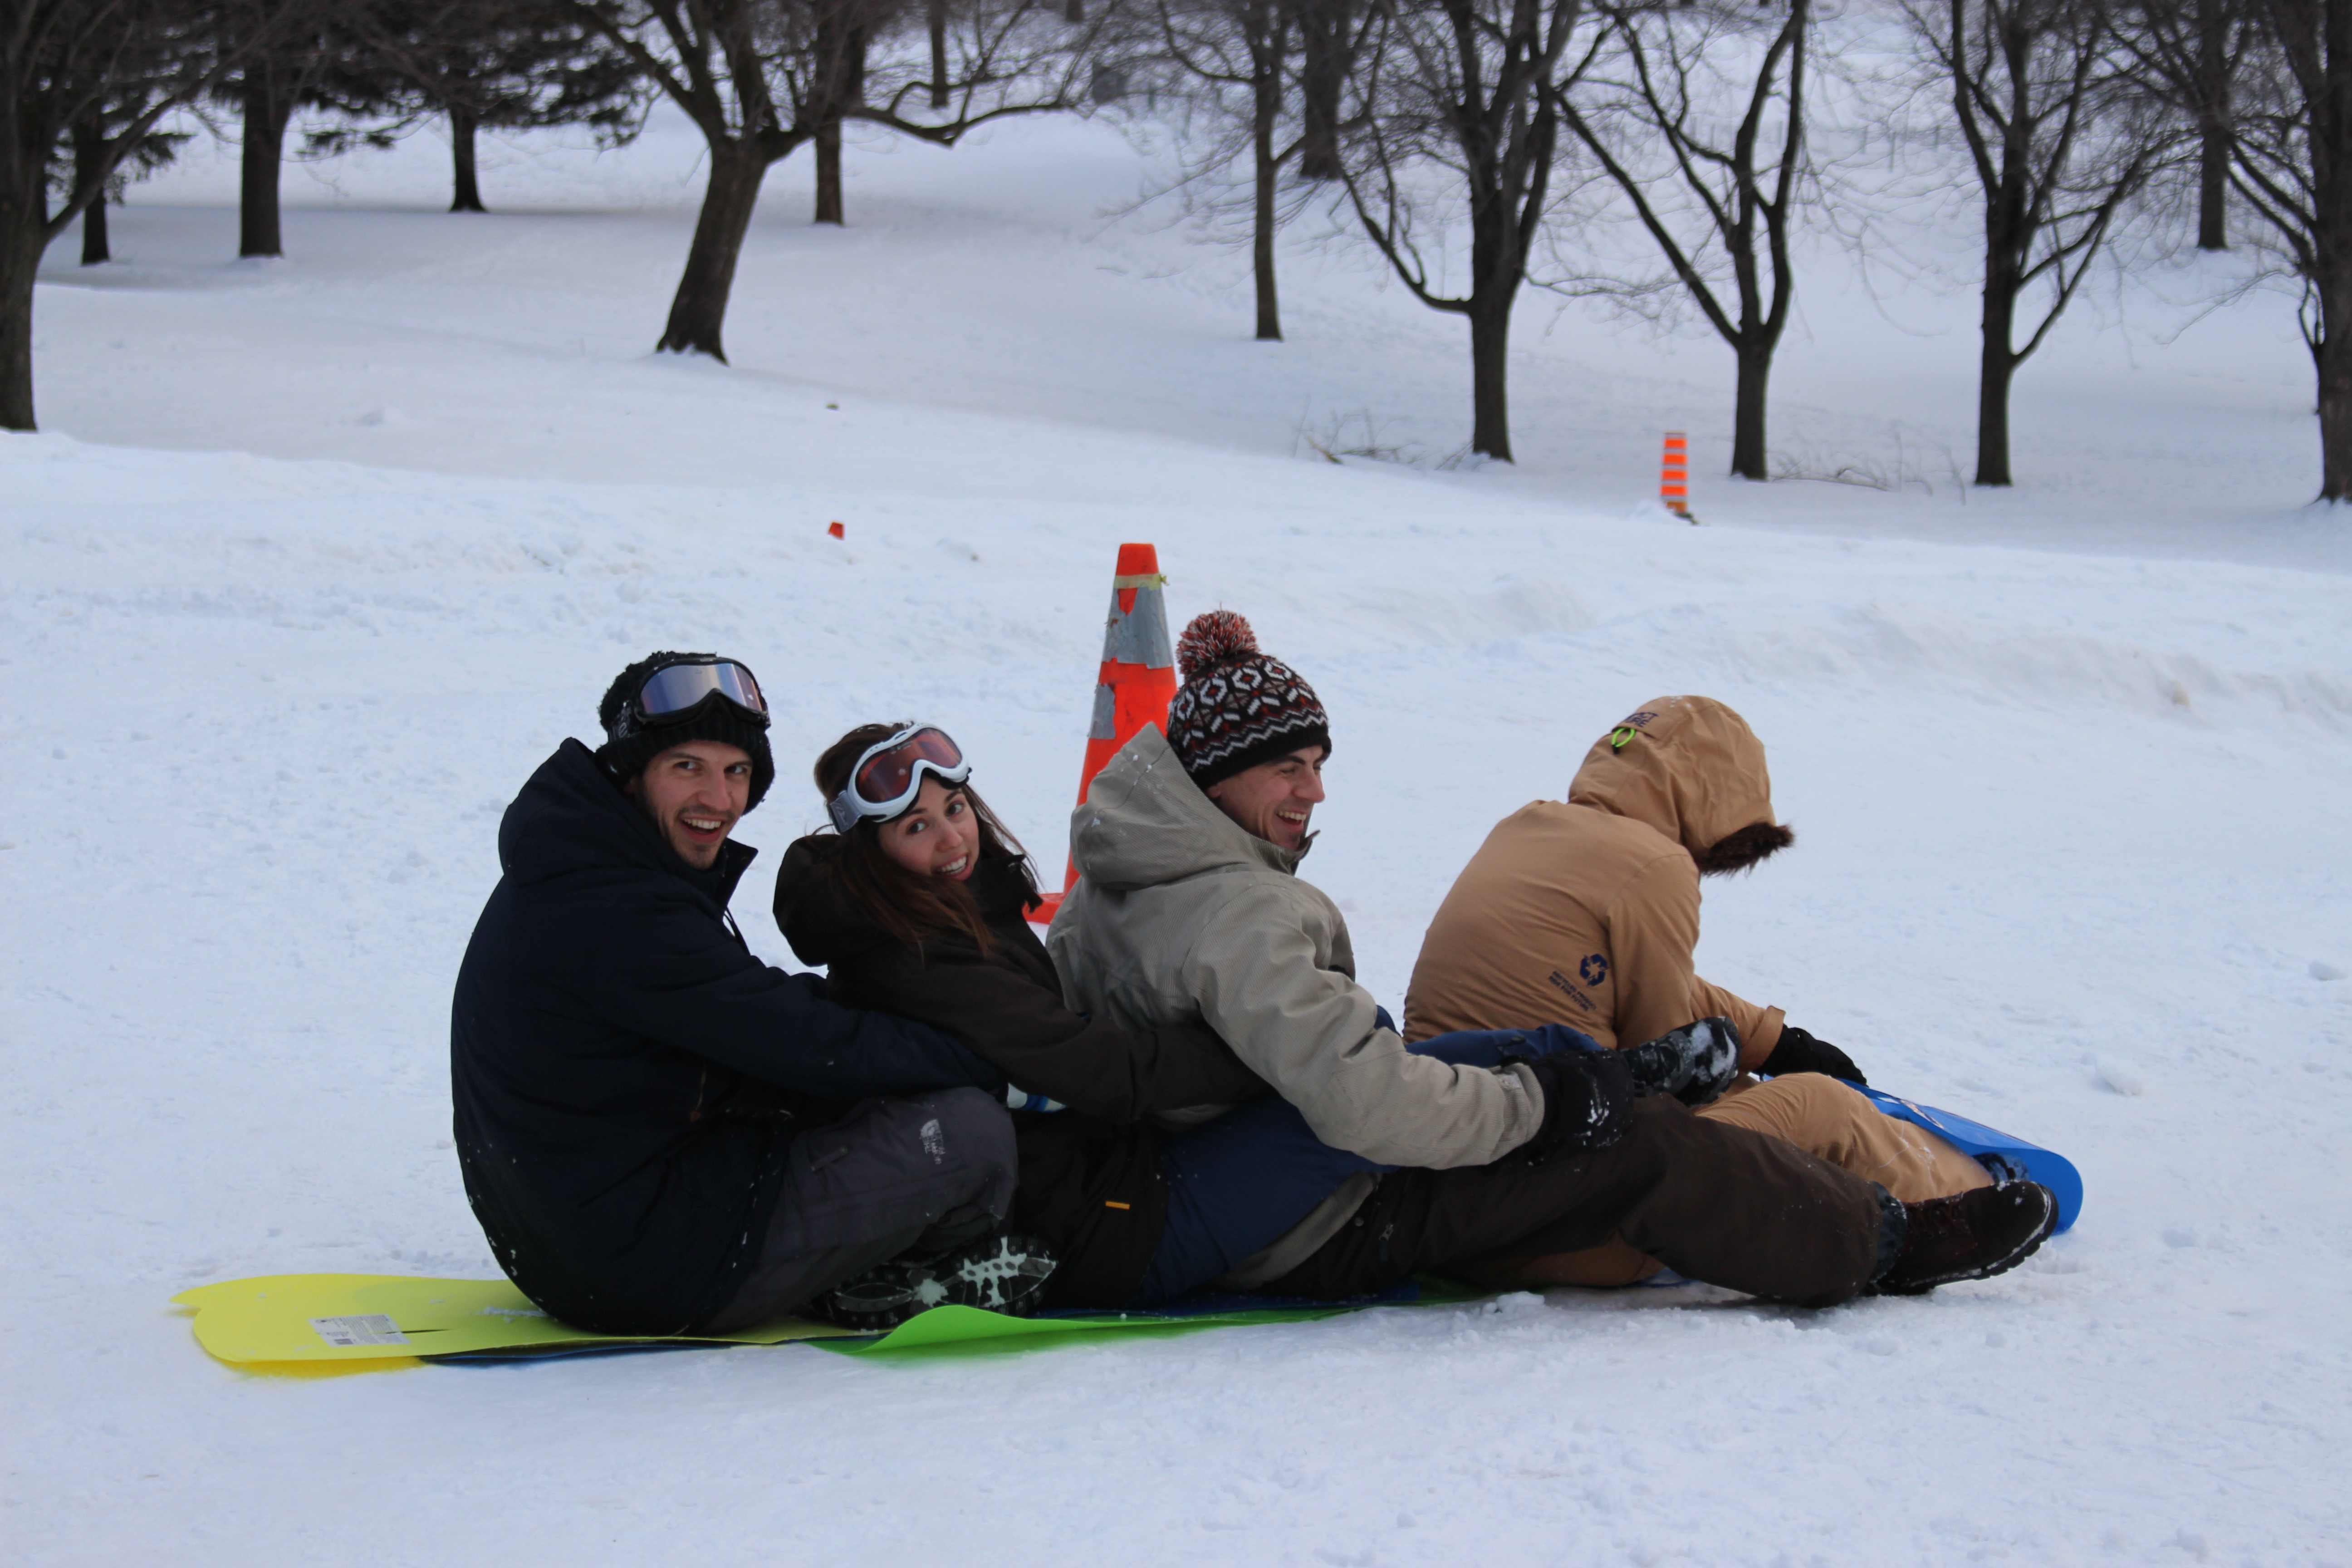 Sledding_on_Mount_Royal.JPG (5184×3456)